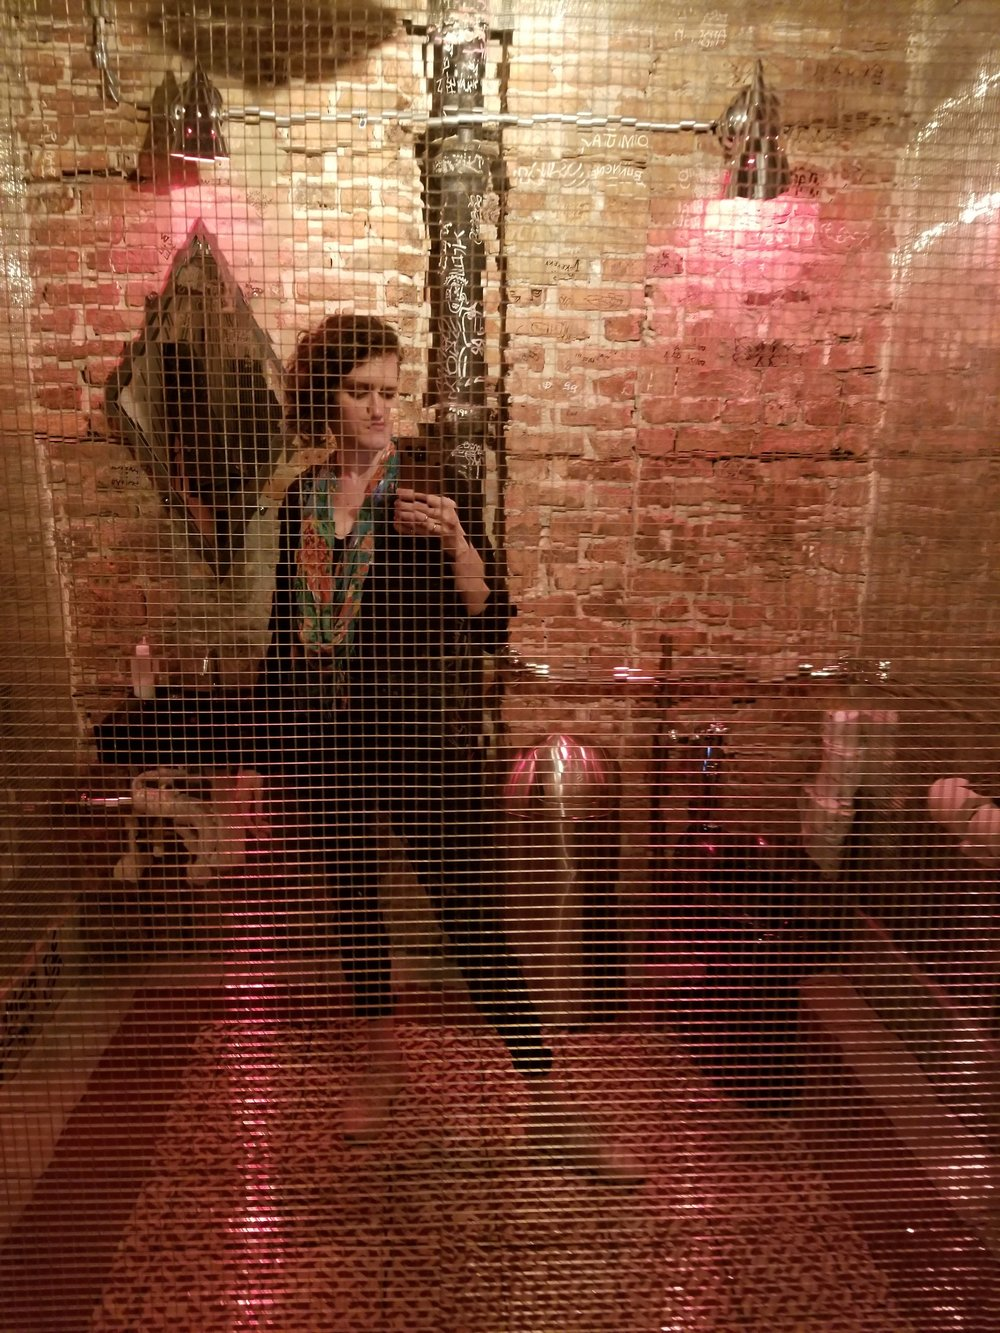 Bathroom selfie at Estereo. Almost the entire bathroom was covered in disco mirrors.